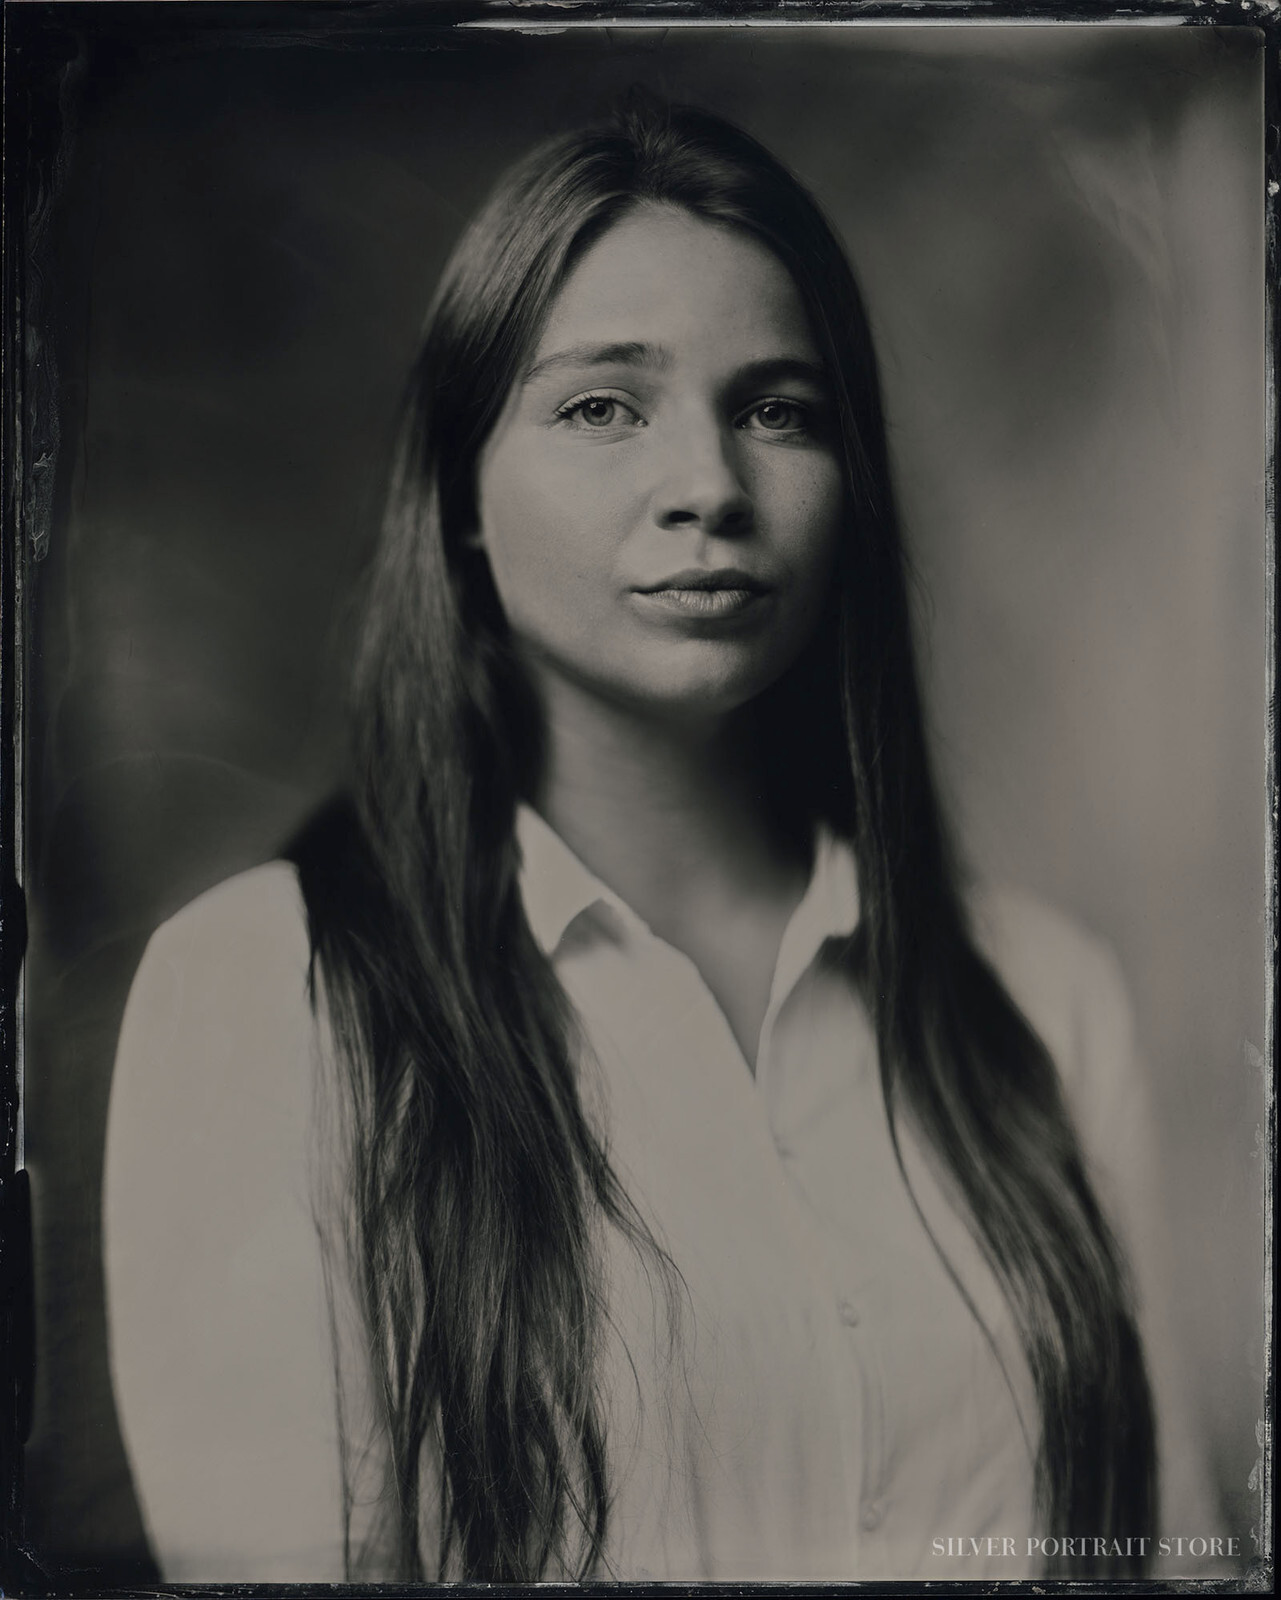 Sophie-Silver Portrait Store-scan from Wet plate collodion-Tintype 20 x 25 cm.